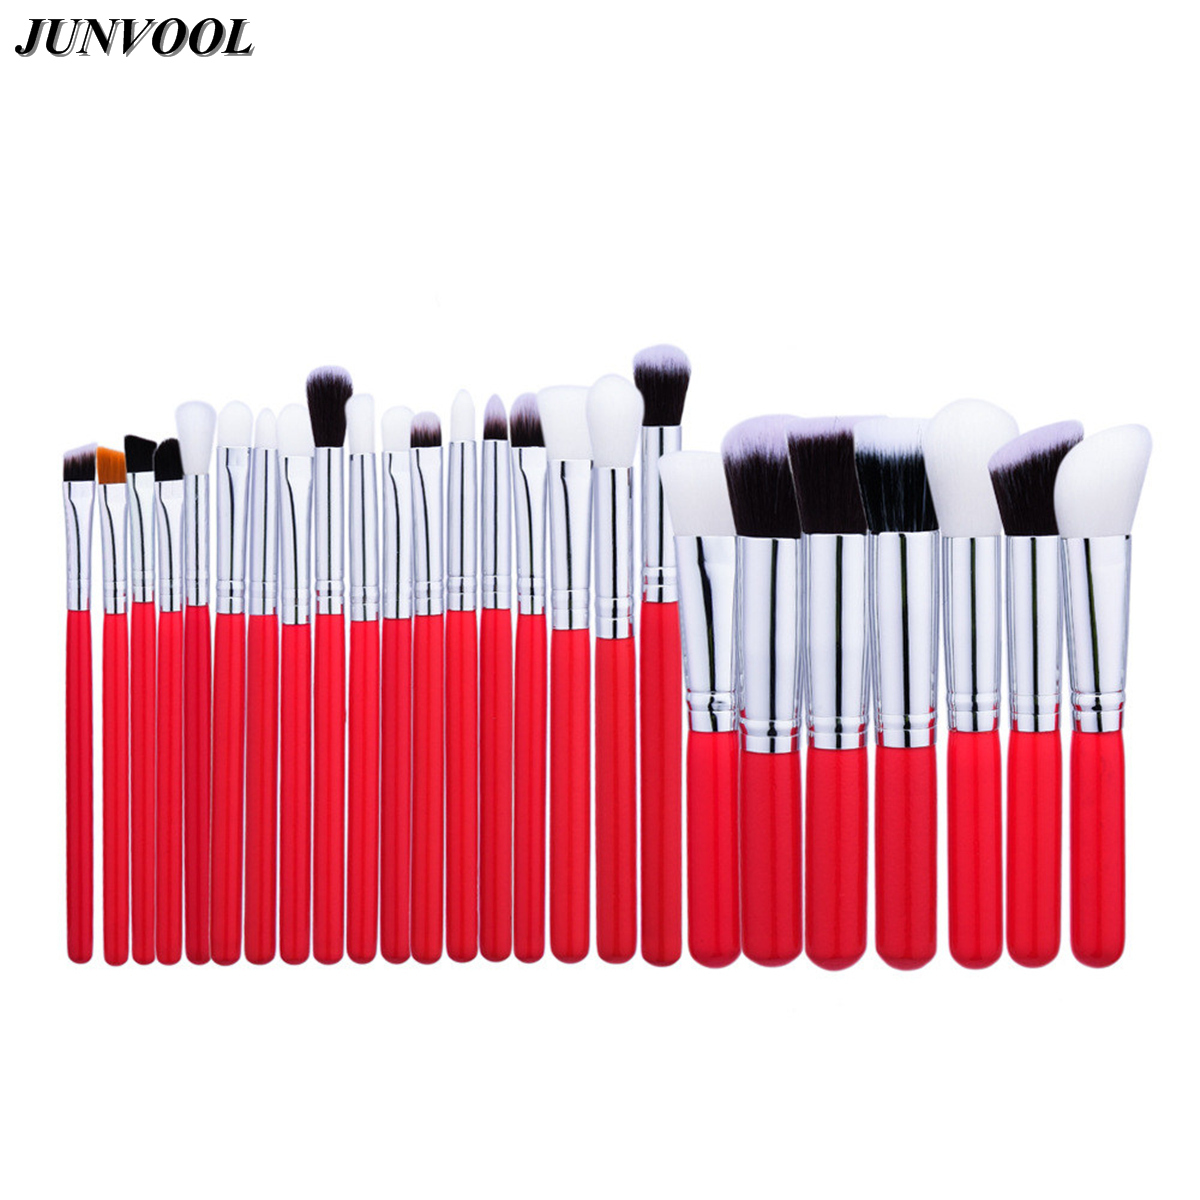 Professional 25pcs Cosmetic Makeup Brushes Set Beauty Blusher Eyeshadow Powder Foundation Eyebrow Make Up Brush Red and Silver 7 pcs cosmetic face cream powder eyeshadow eyeliner makeup brushes set powder blusher foundation cosmetic tool drop shipping